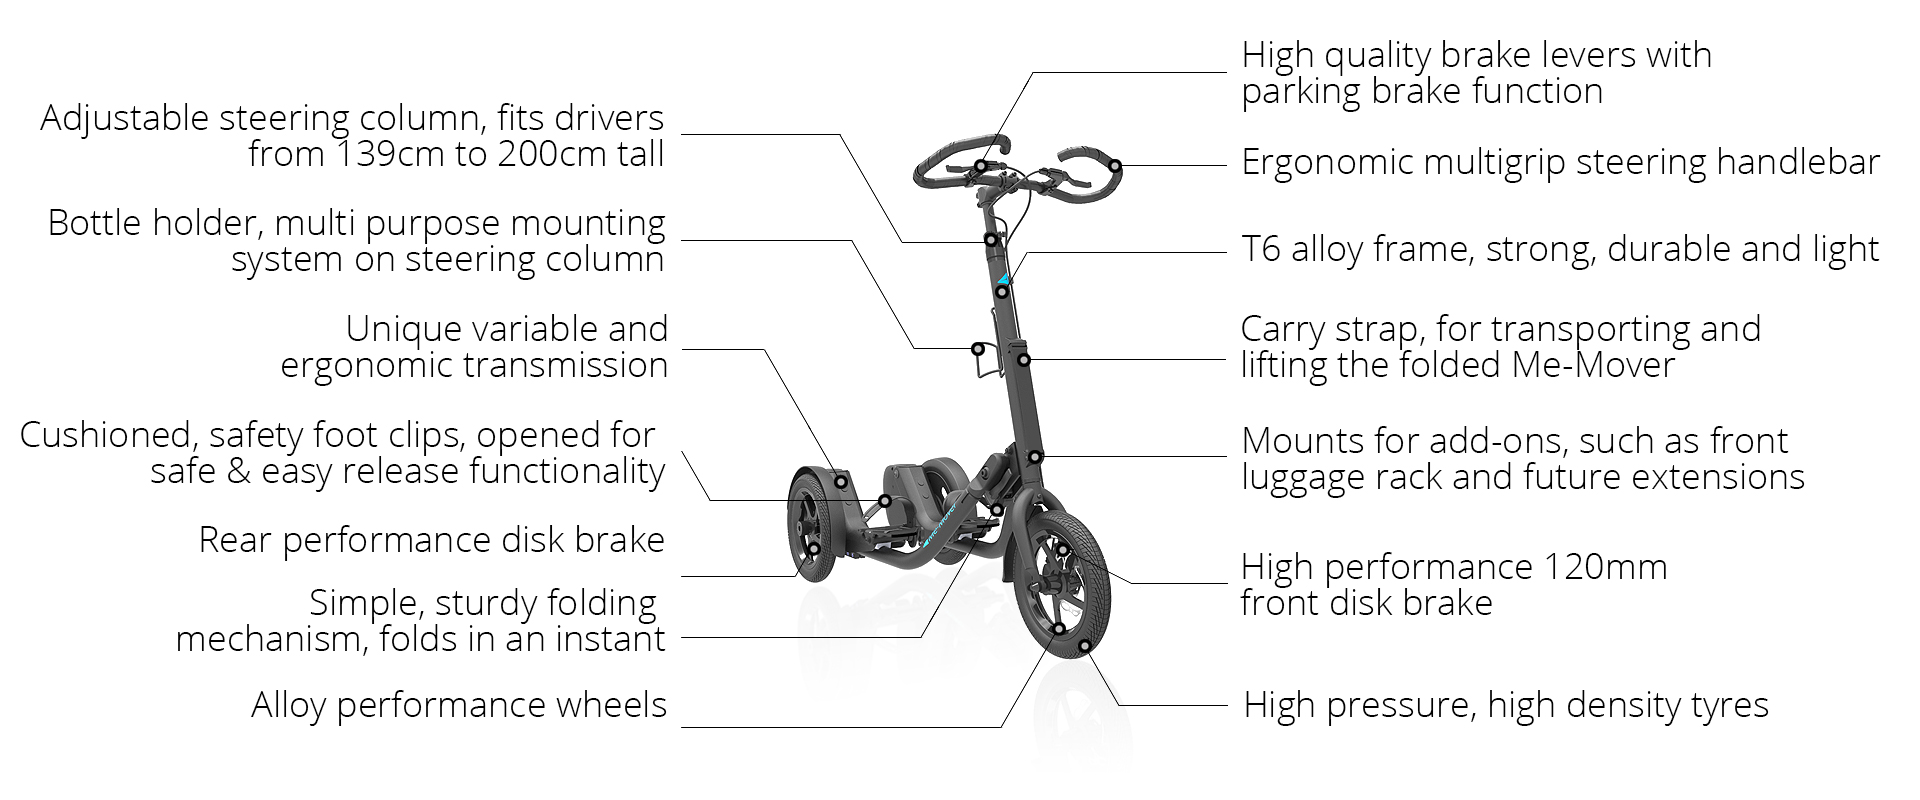 3-me-mover-specifications